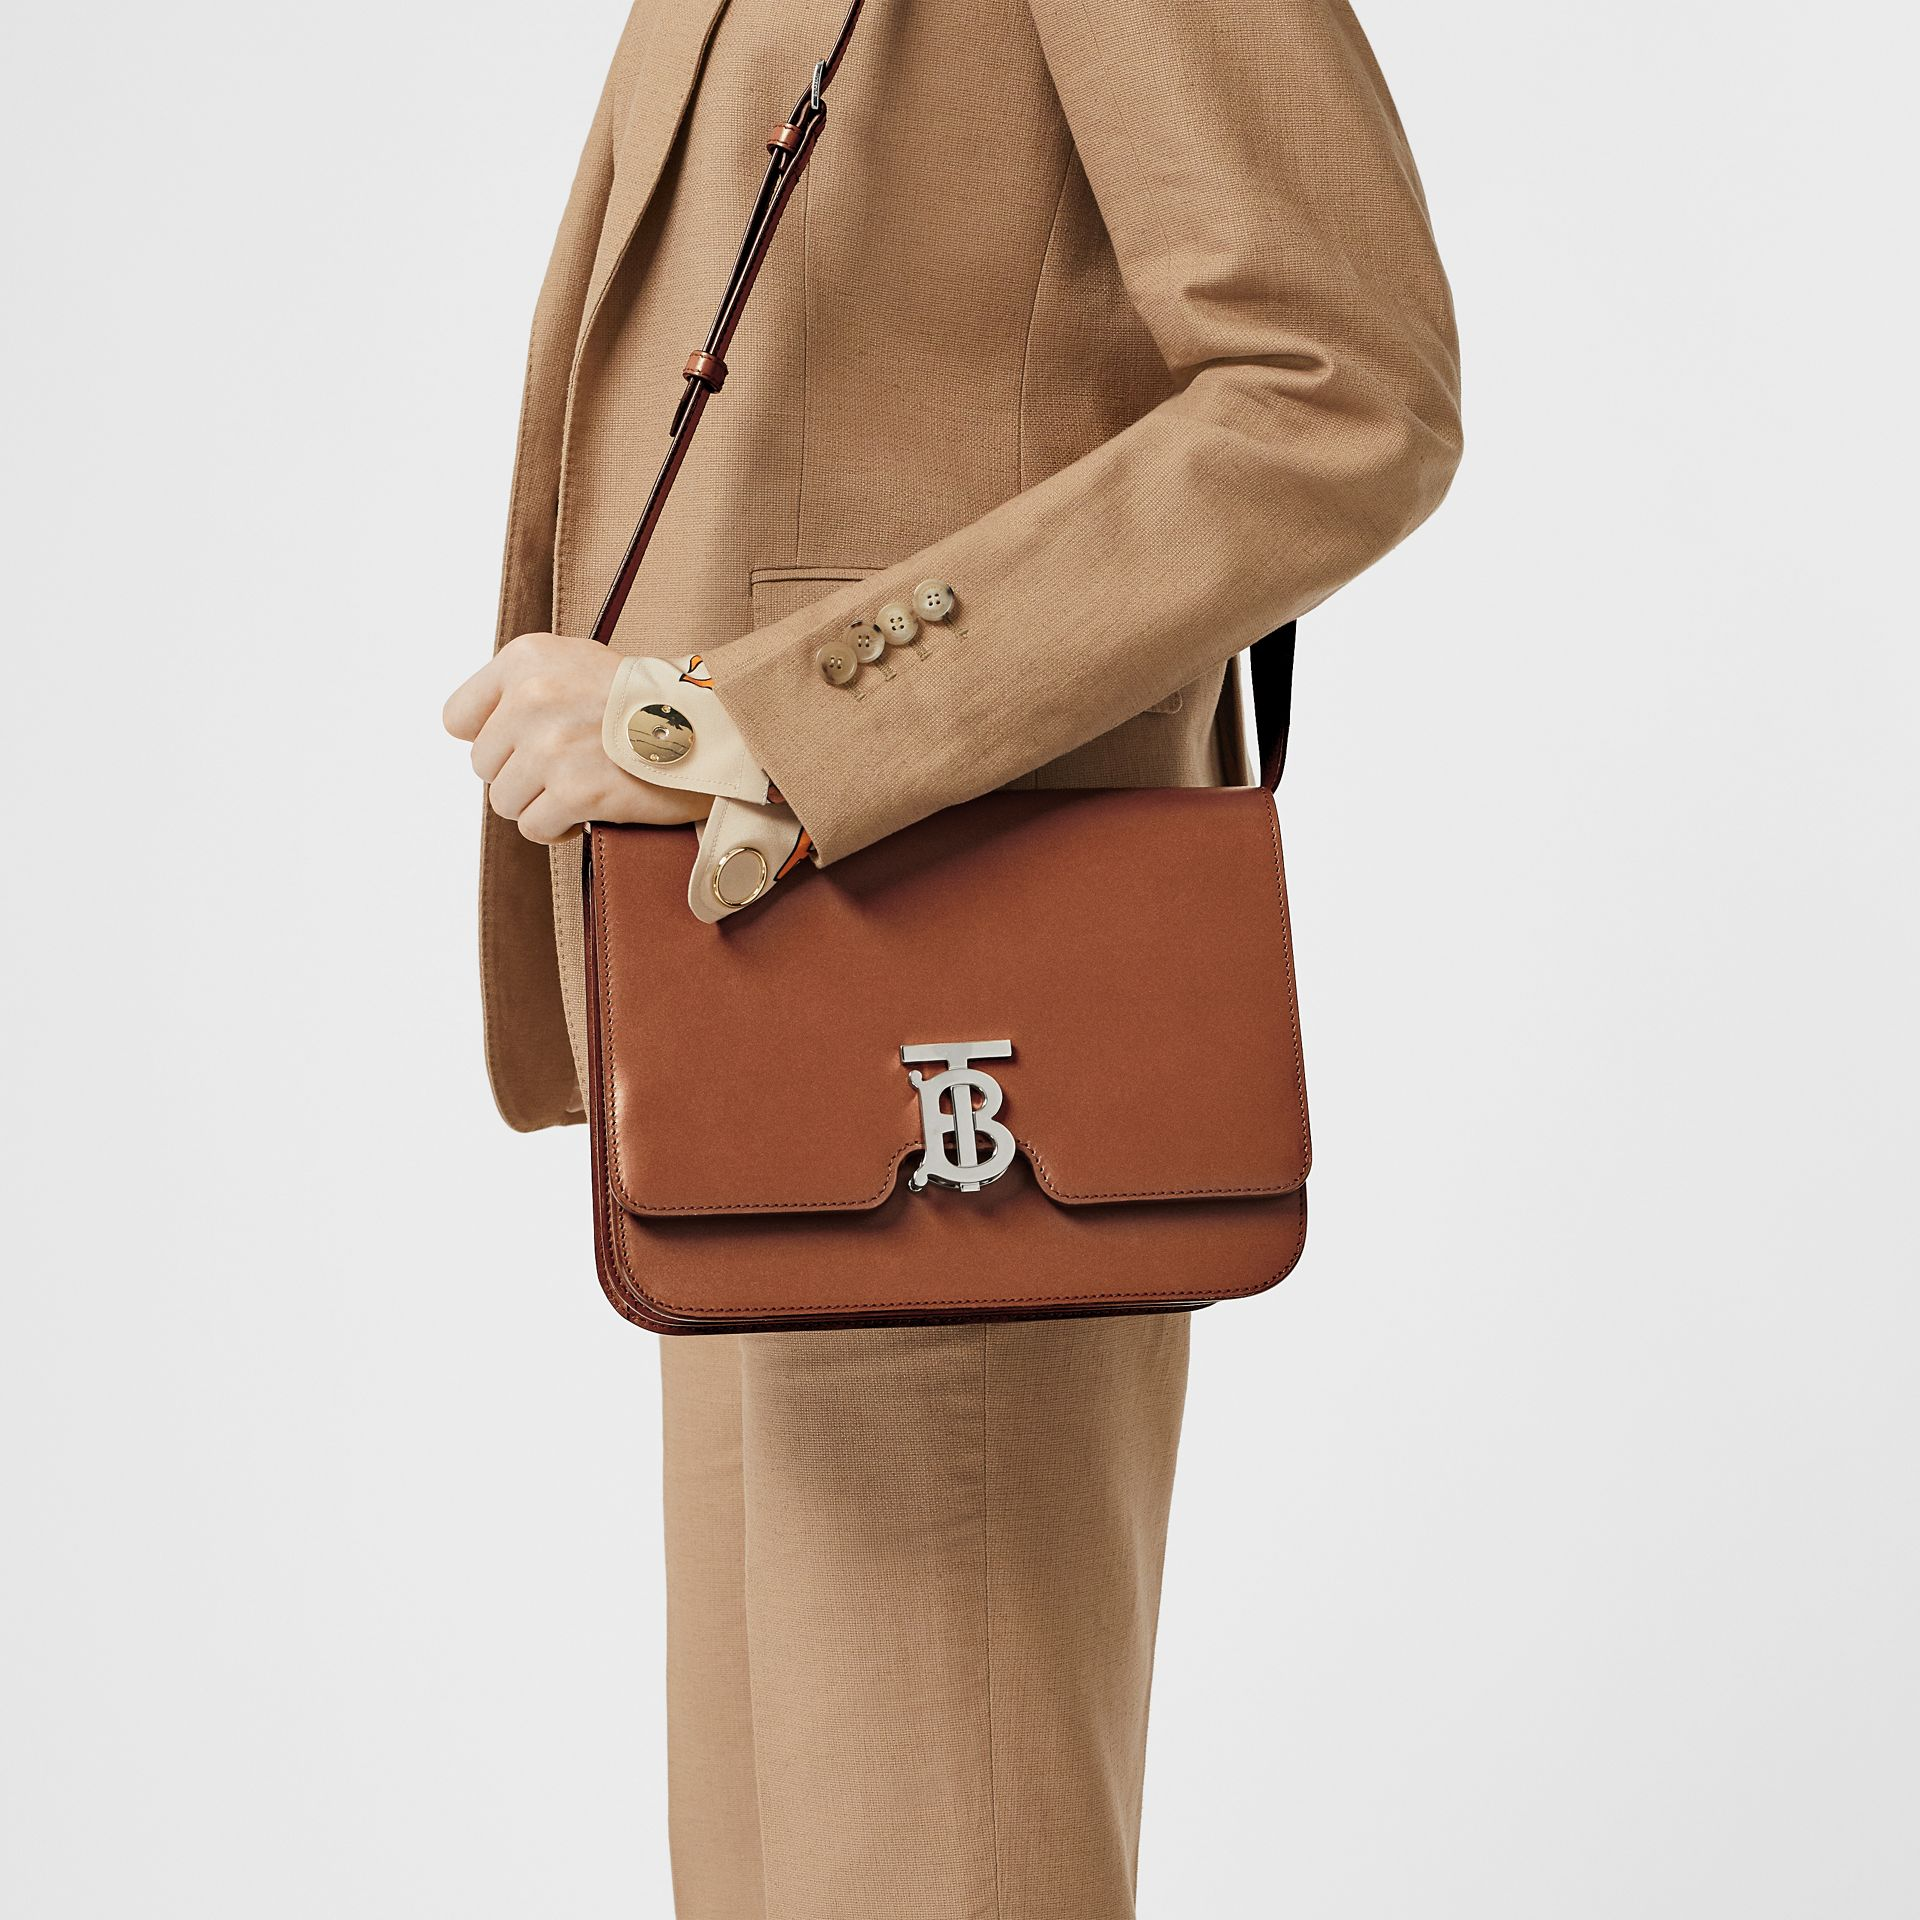 Medium Leather TB Bag in Malt Brown - Women | Burberry - gallery image 2